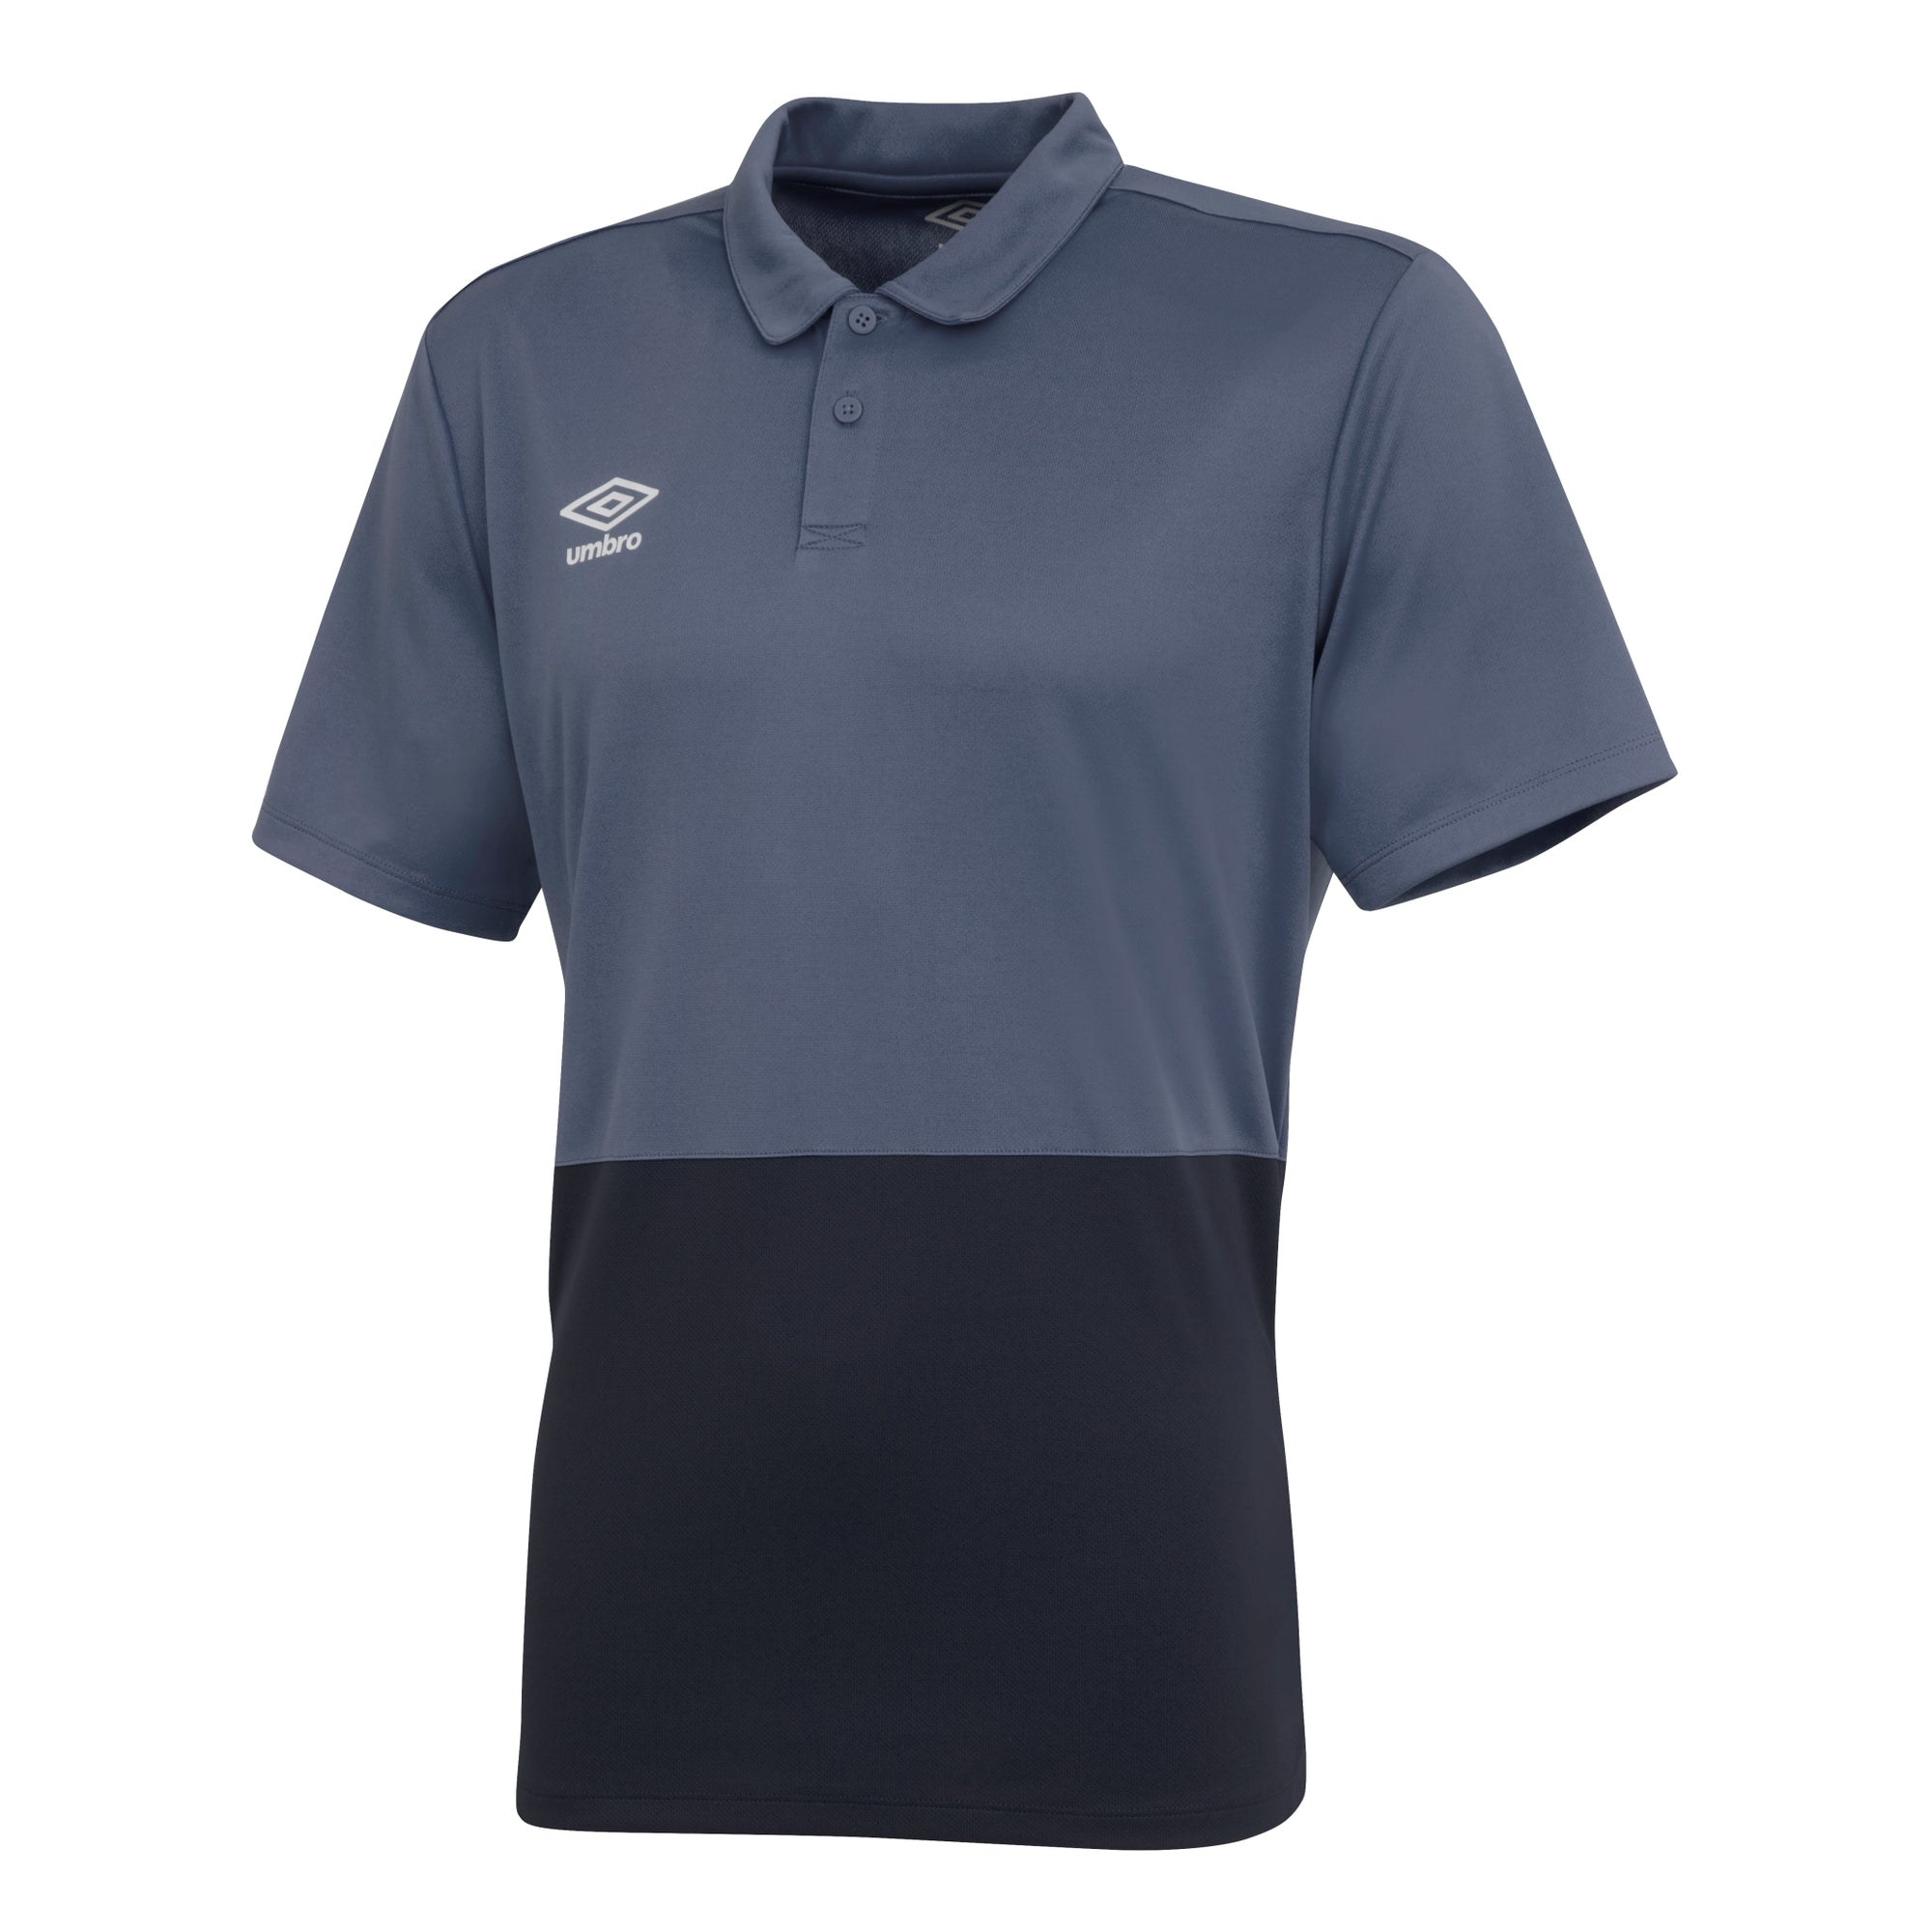 Umbro Poly Polo - Carbon/Black